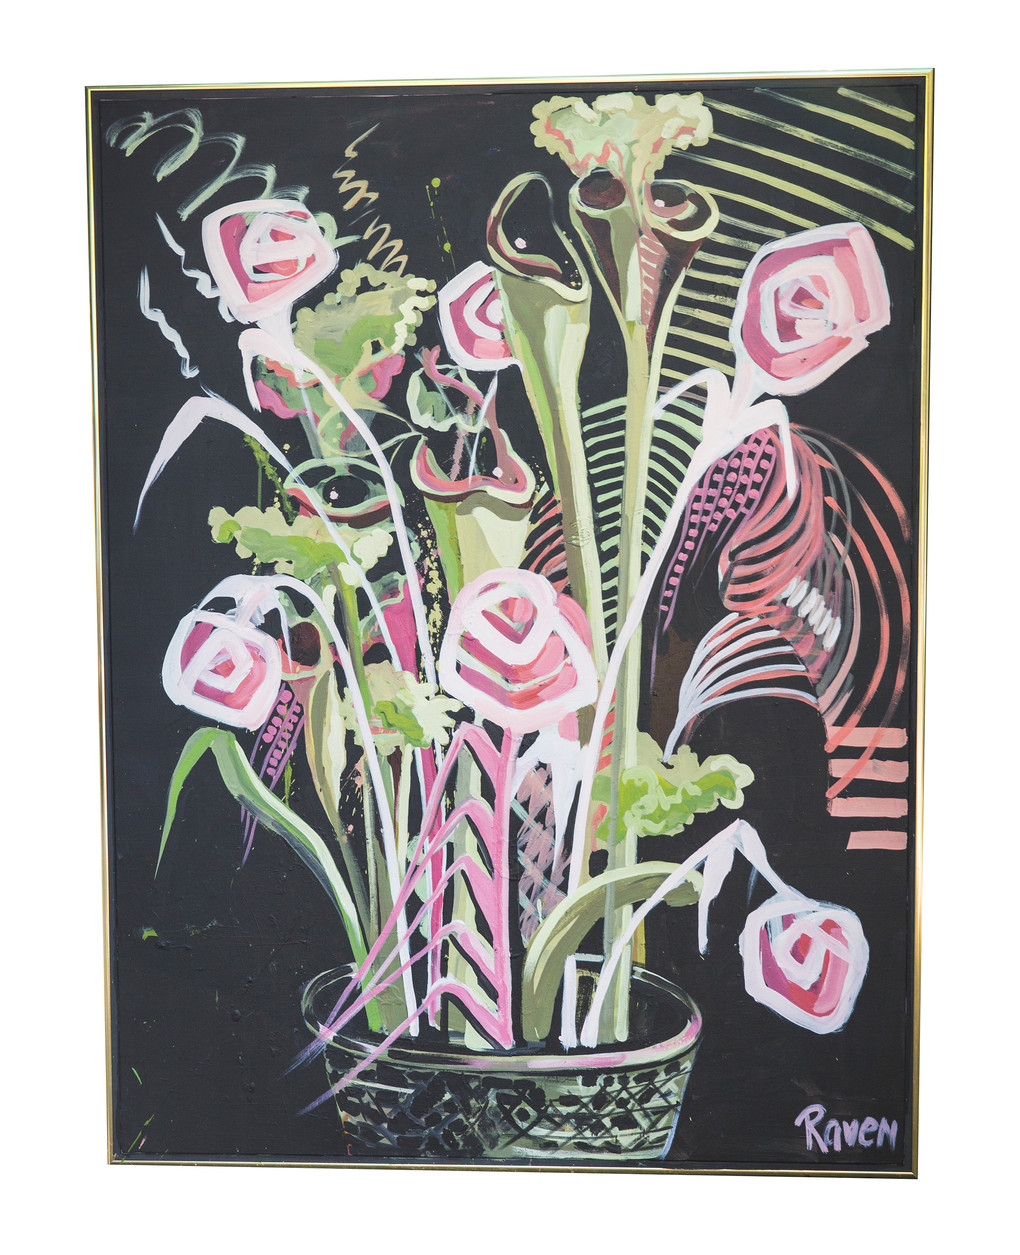 The life of flowers - $1700 (3' x 4')